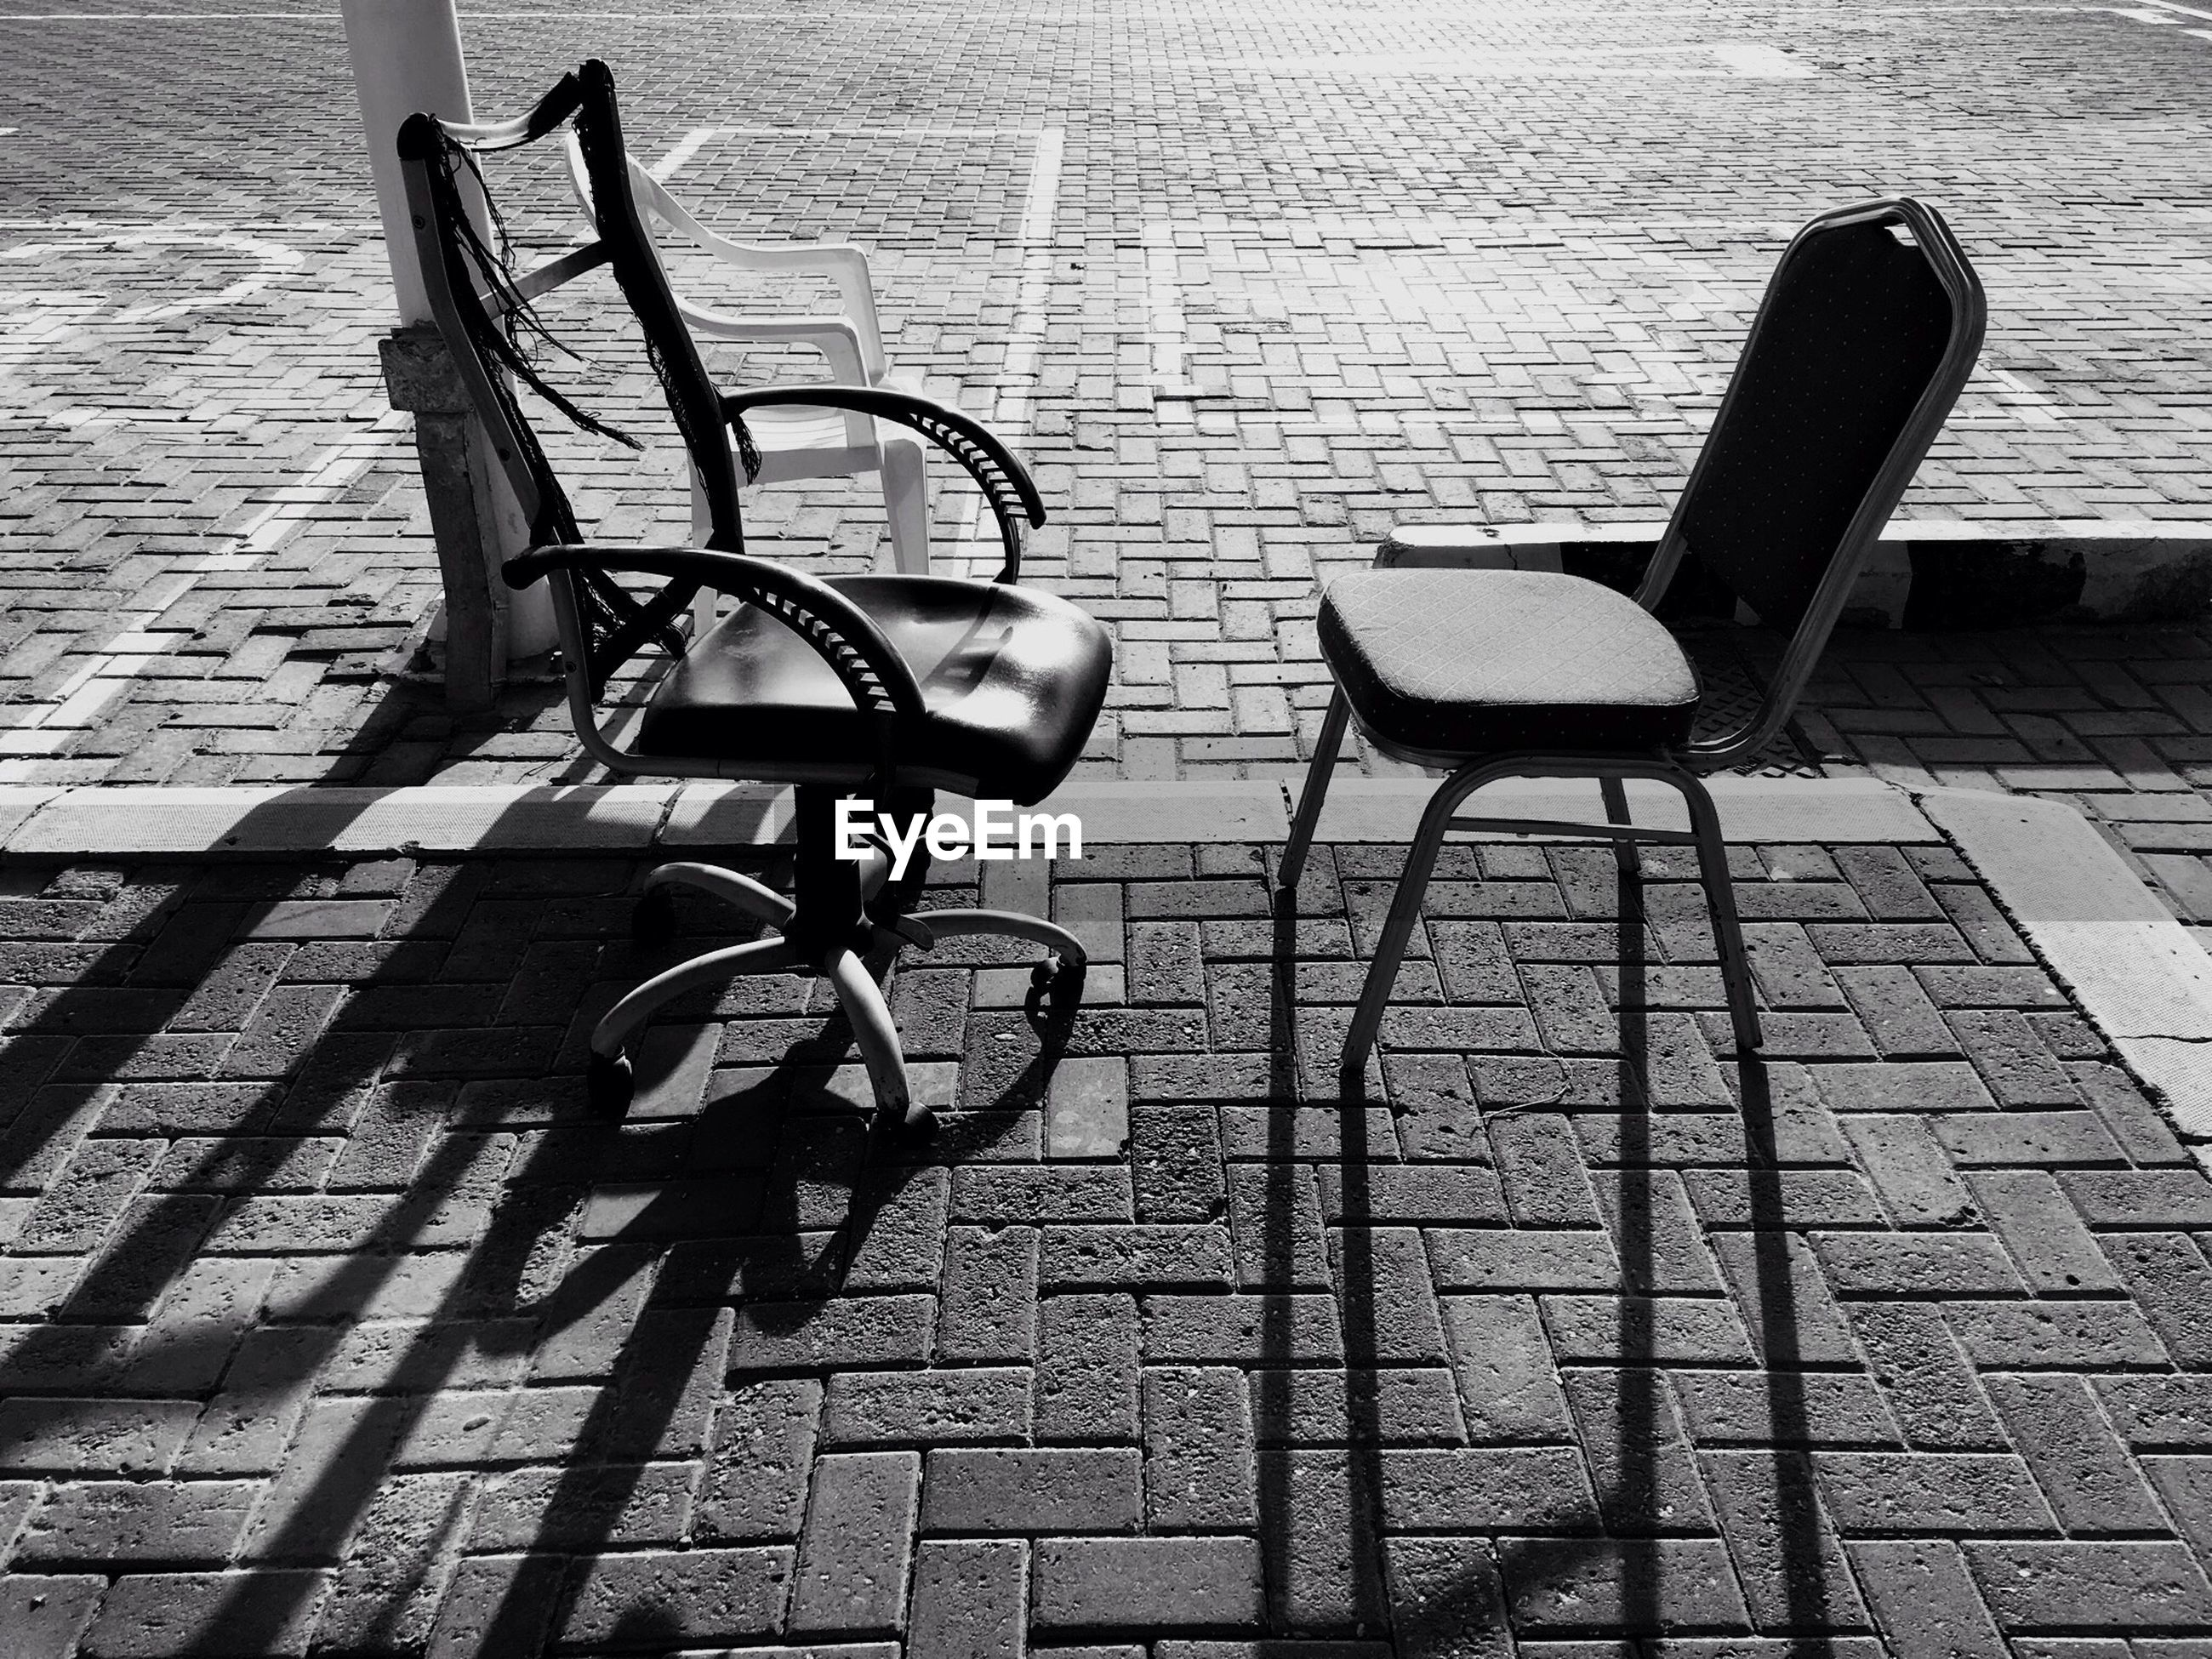 Side view of empty chairs on cobblestone